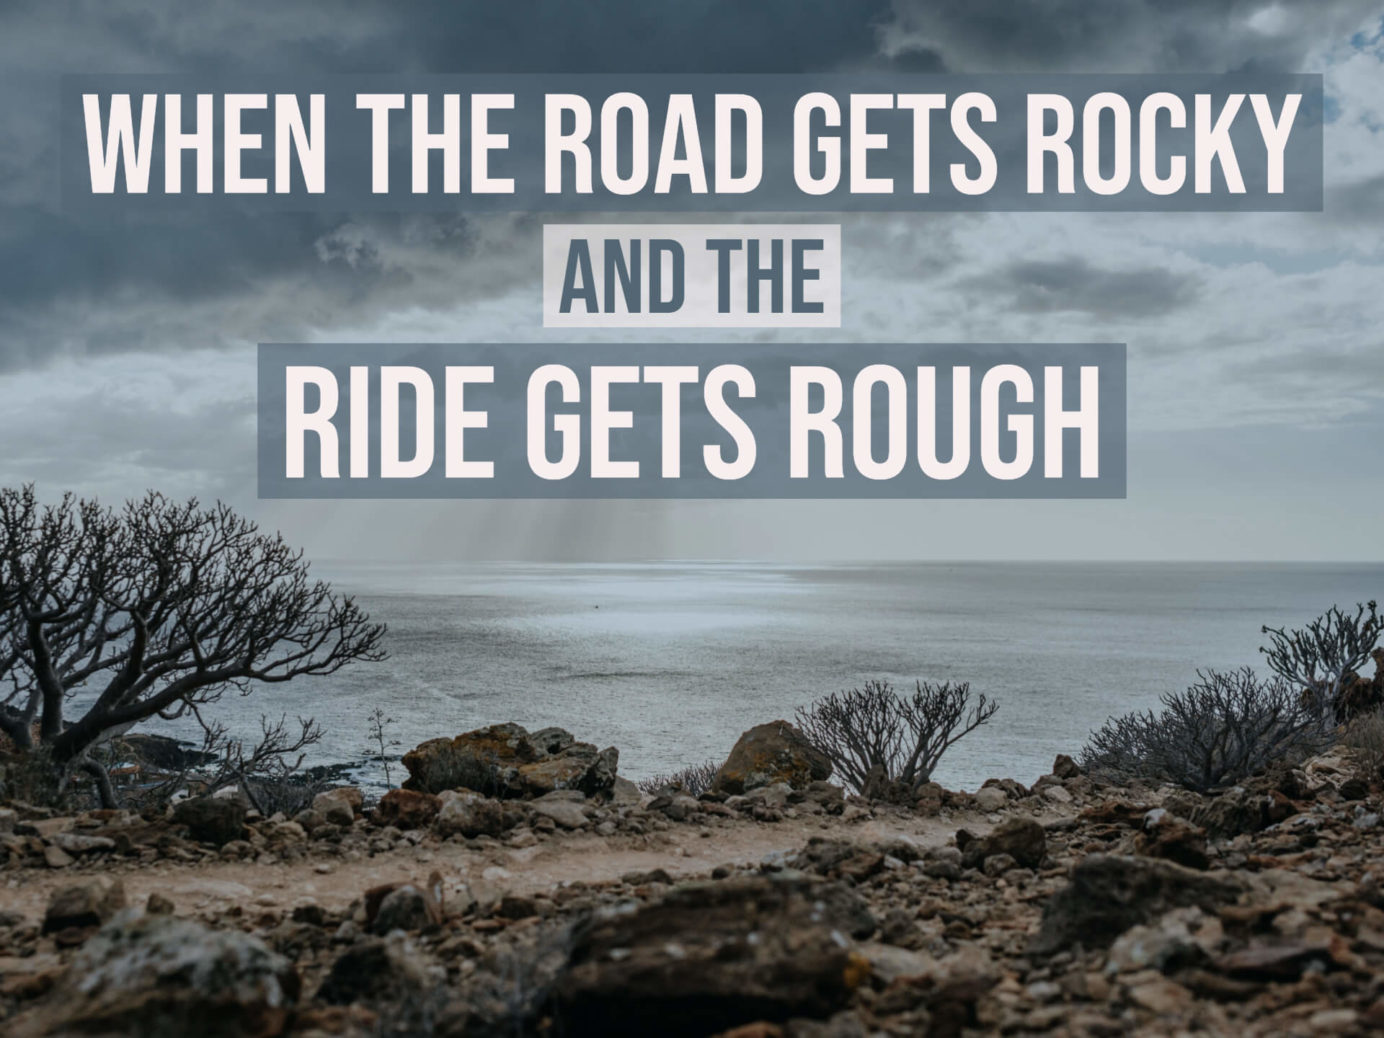 Edy Cozort - When The Road Gets Rocky and the Ride Gets Rough